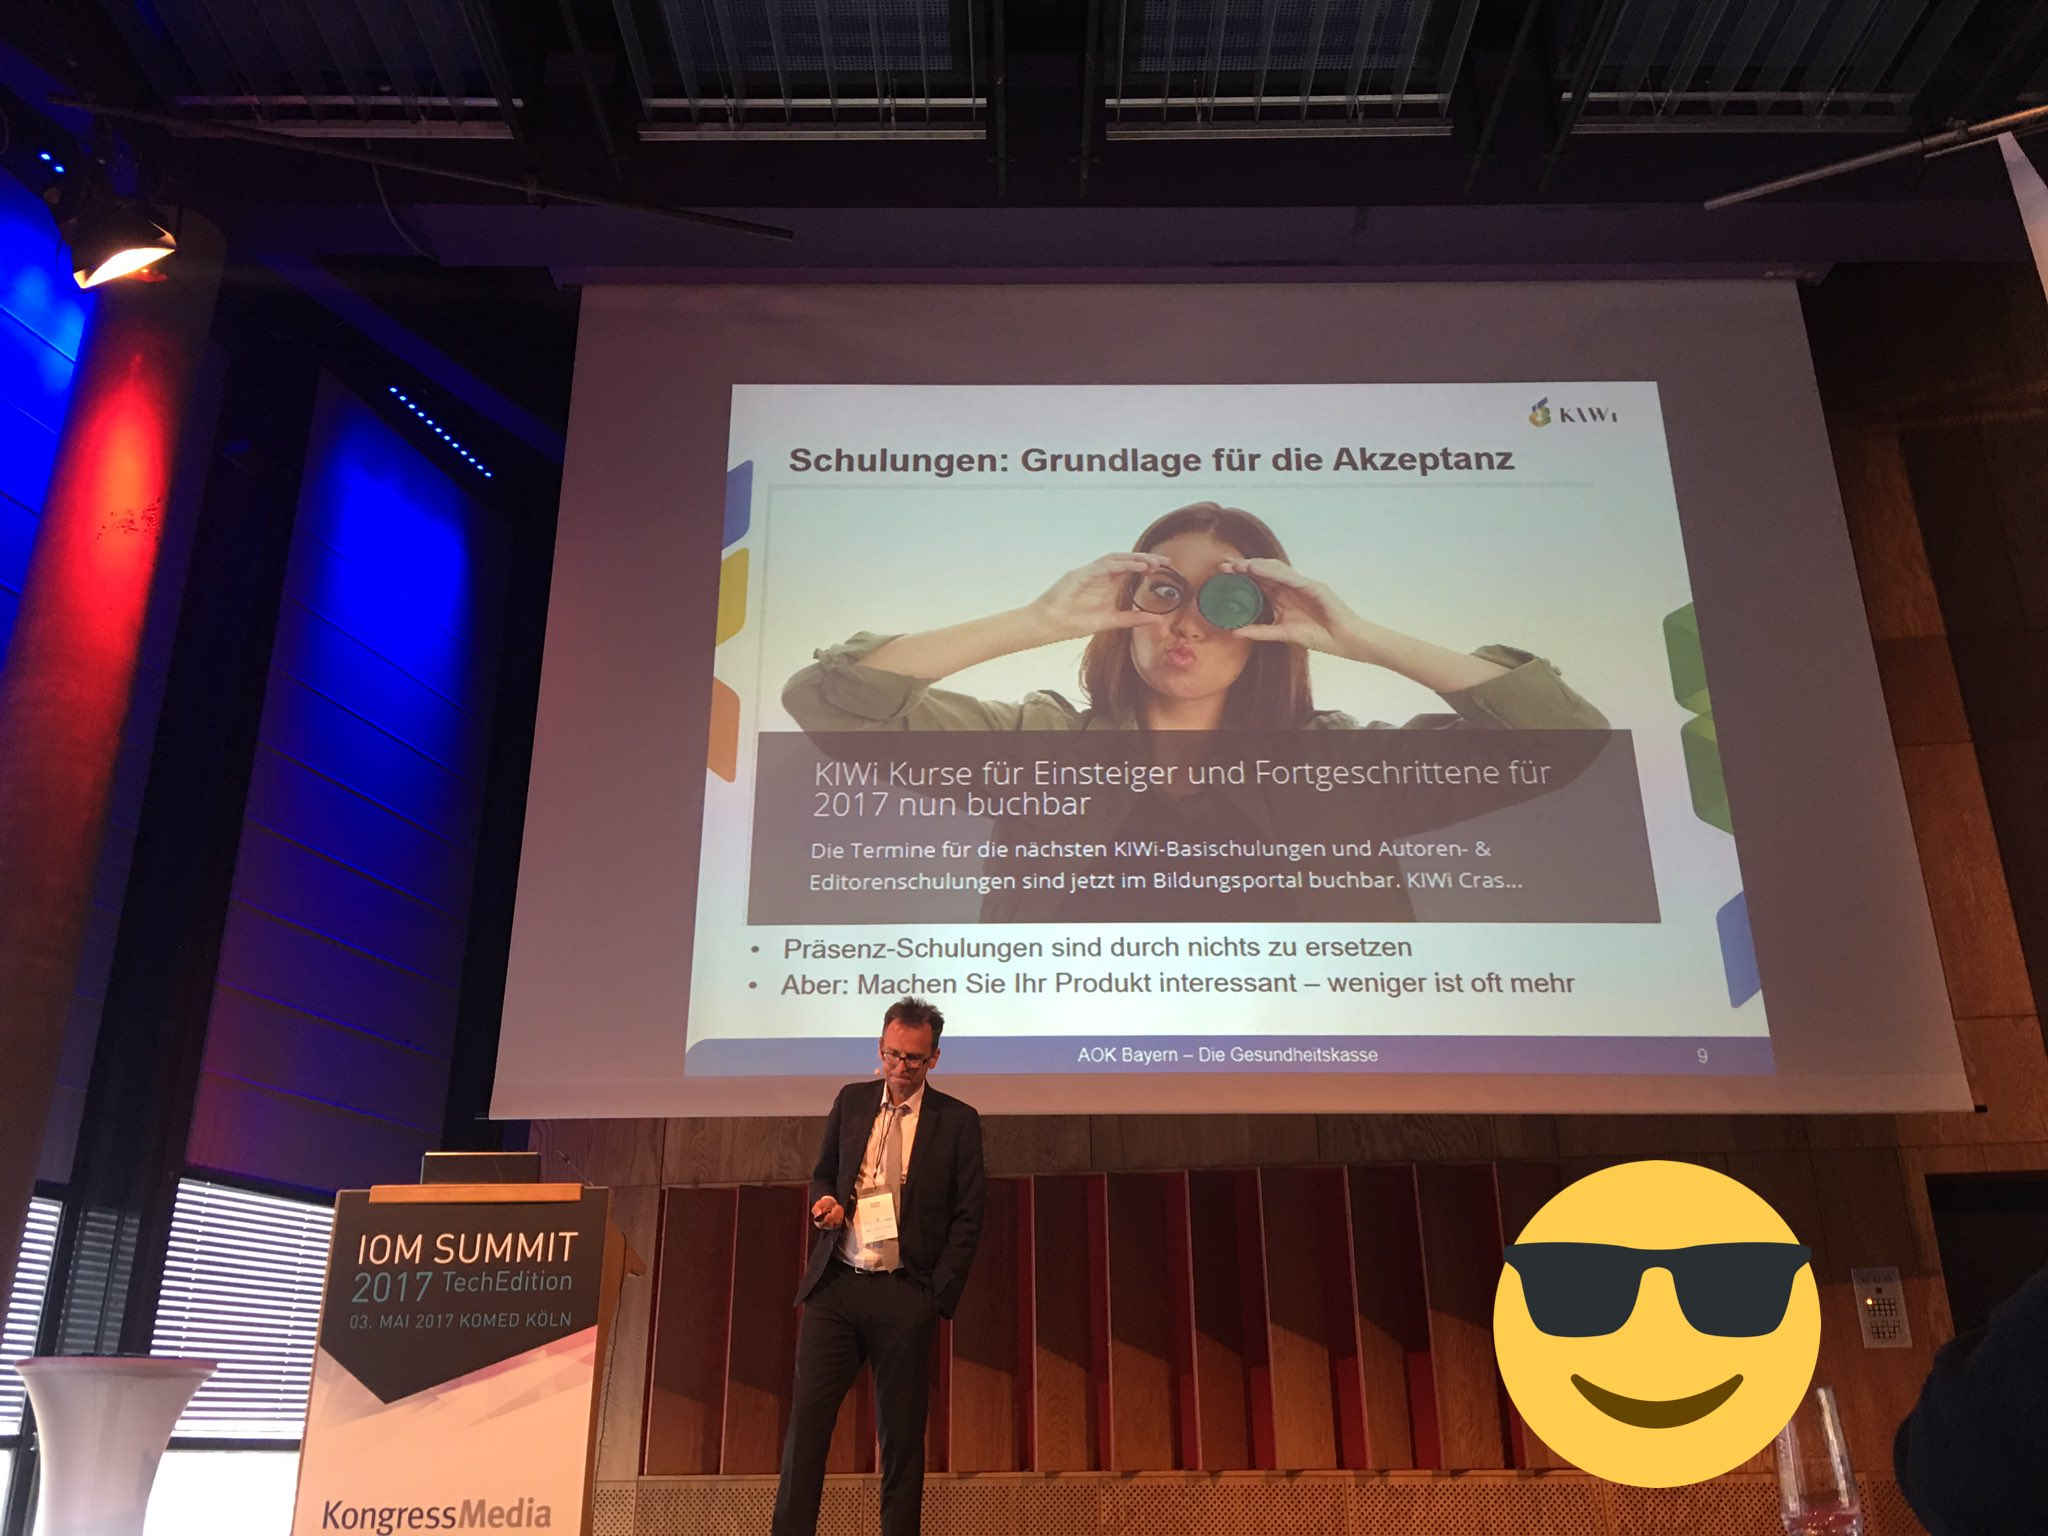 #Frankenpower in #cologne @iomsummit @udo_walz talked about learnings at @AOKBayern #ioms17 #thx https://t.co/Dz2ffDJuxK